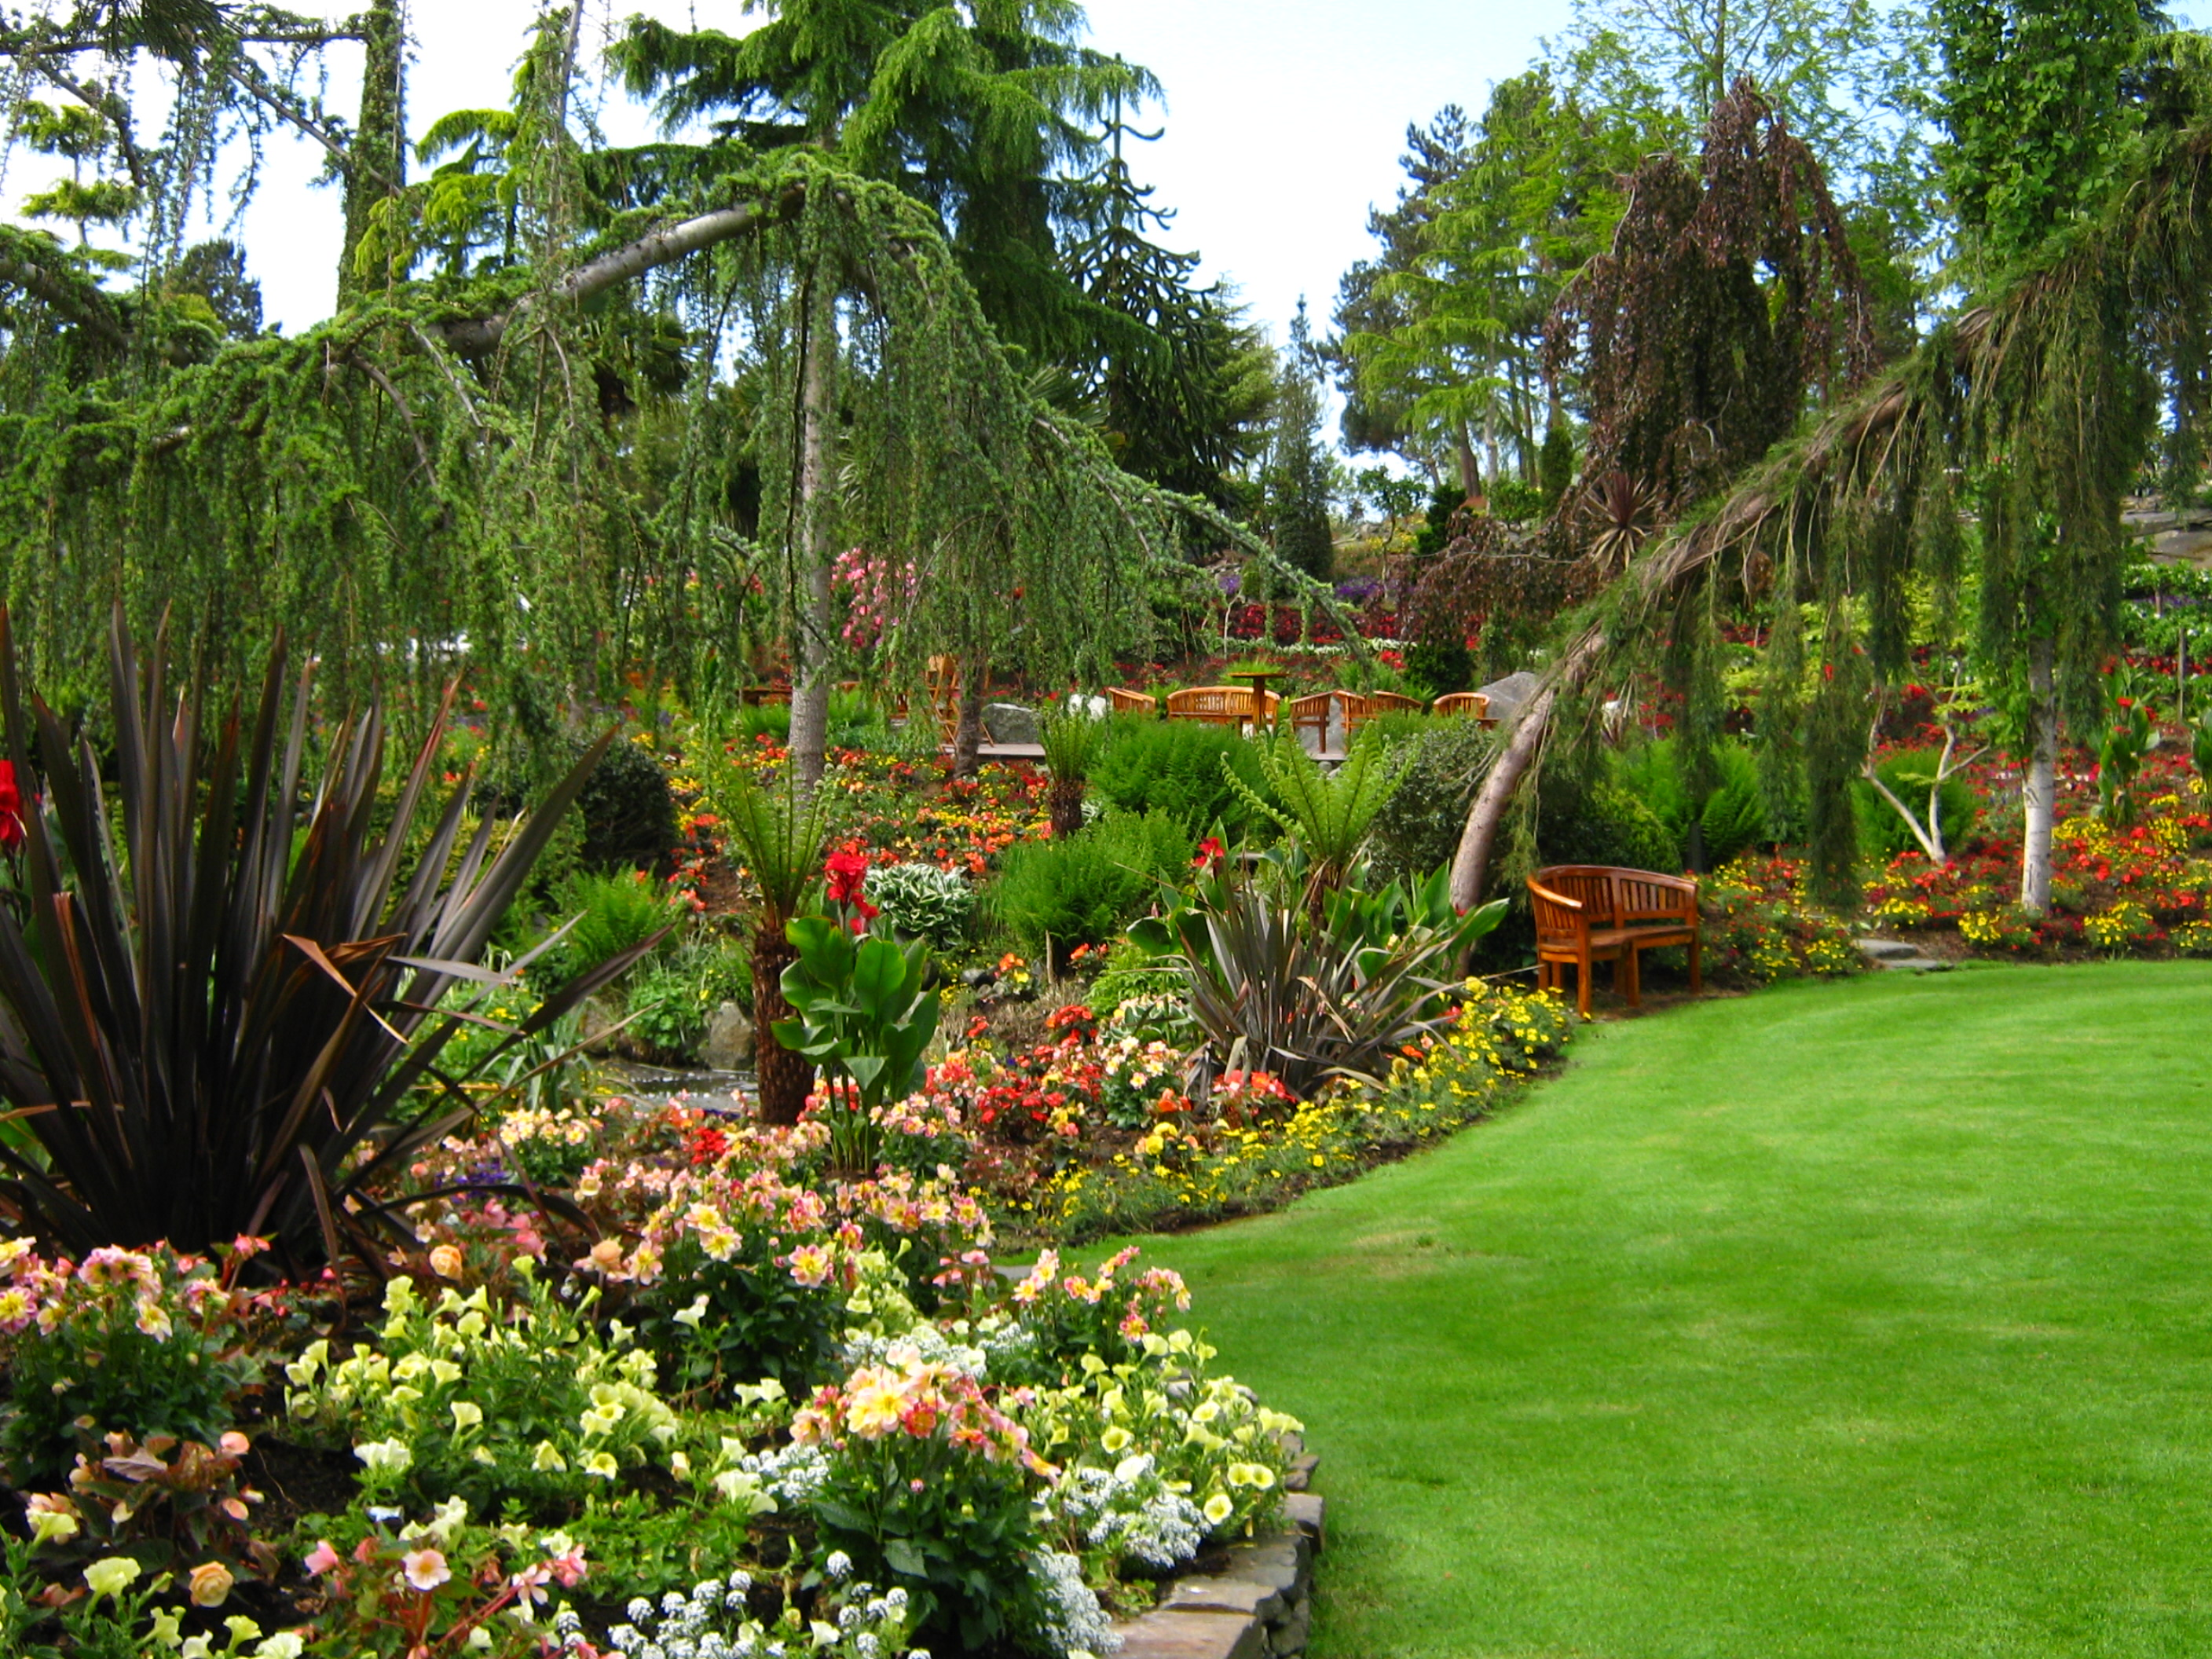 Florida friendly annuals, shrubs, trees and more make a sustainable, beautiful landscape design